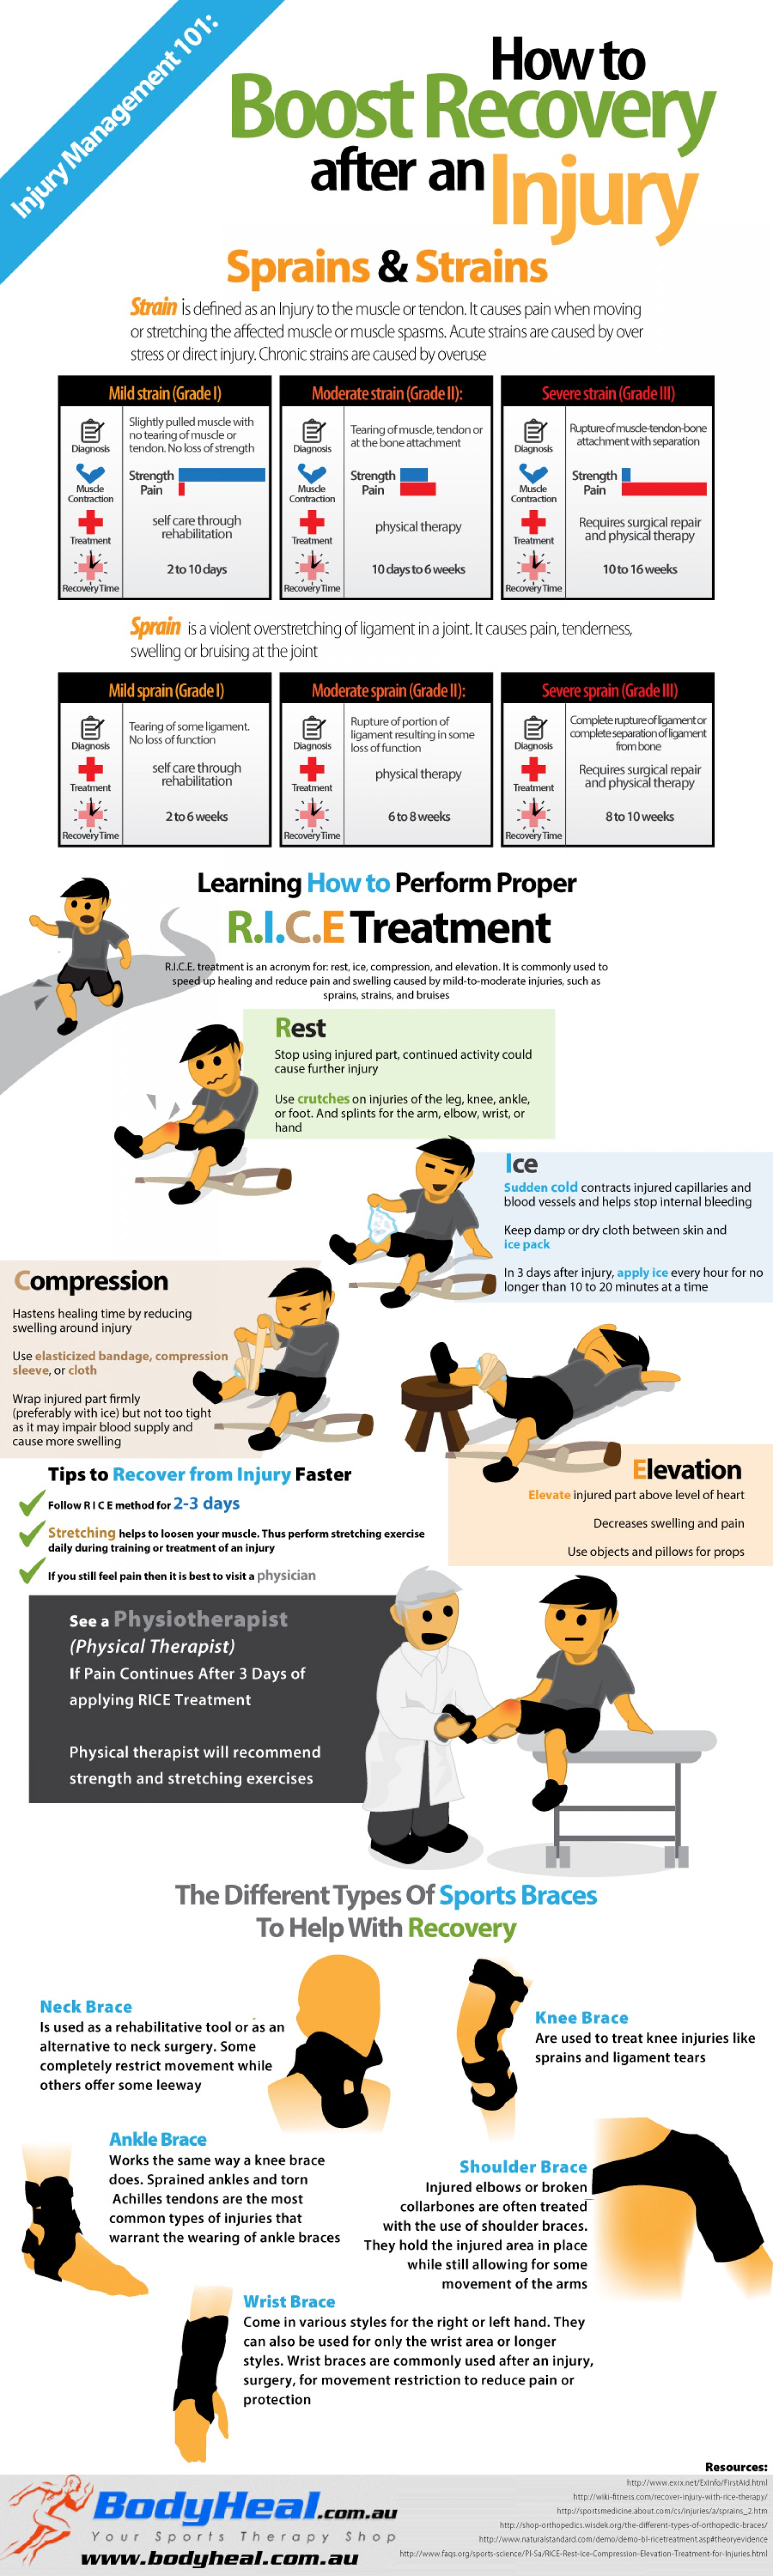 injury-management-101-how-to-boost-recovery-after-a-sports-injury_5285b57567fe7_w1500